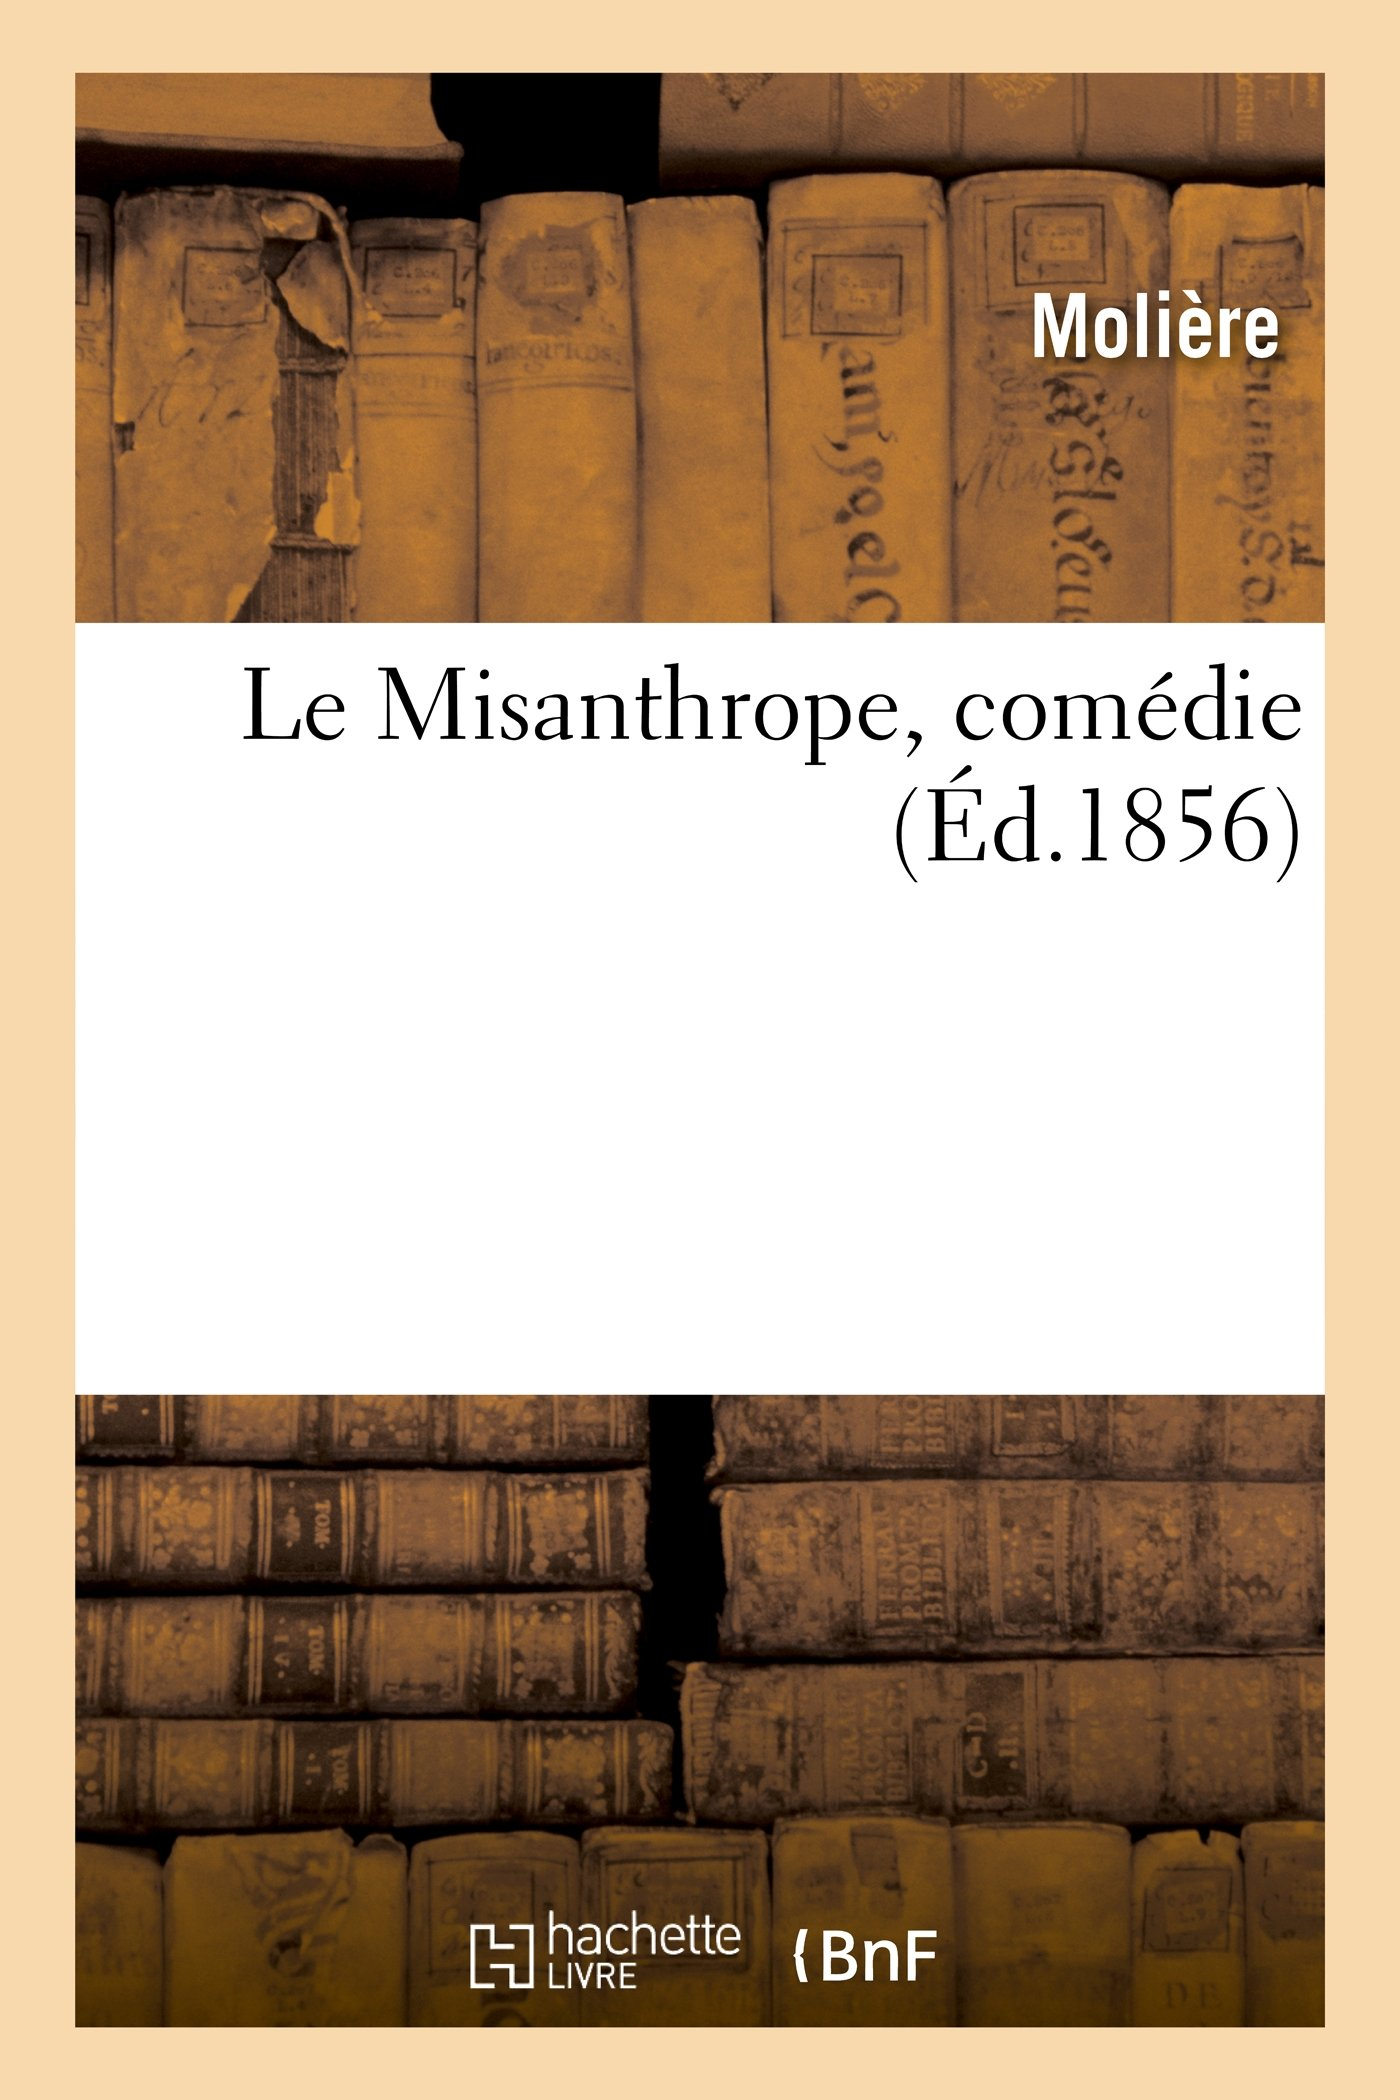 Le Misanthrope, Comedie, Edition Classique (Litterature) (French Edition)